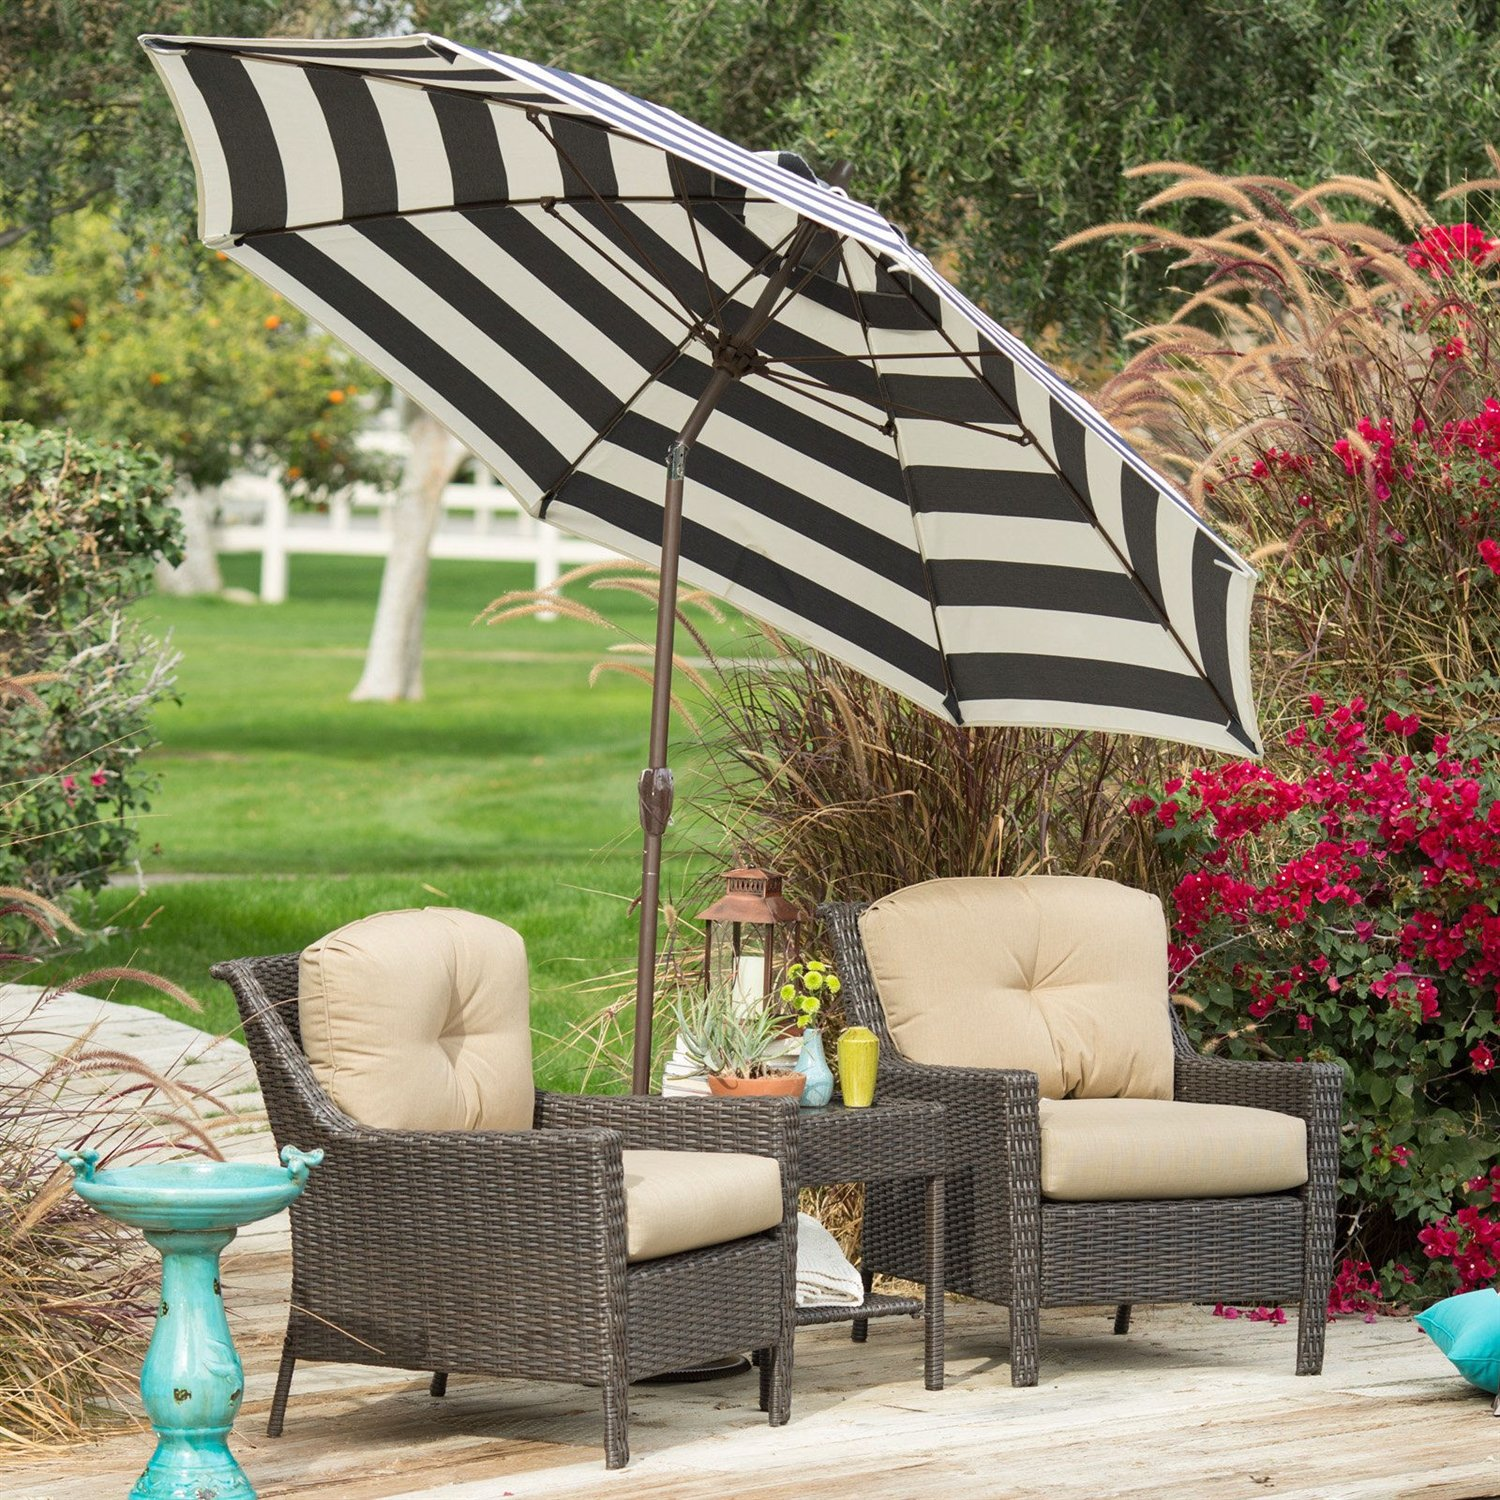 Superbe Spending Time Outdoors Just Got Better With This Stylish 9 Ft Market Patio  Umbrella With